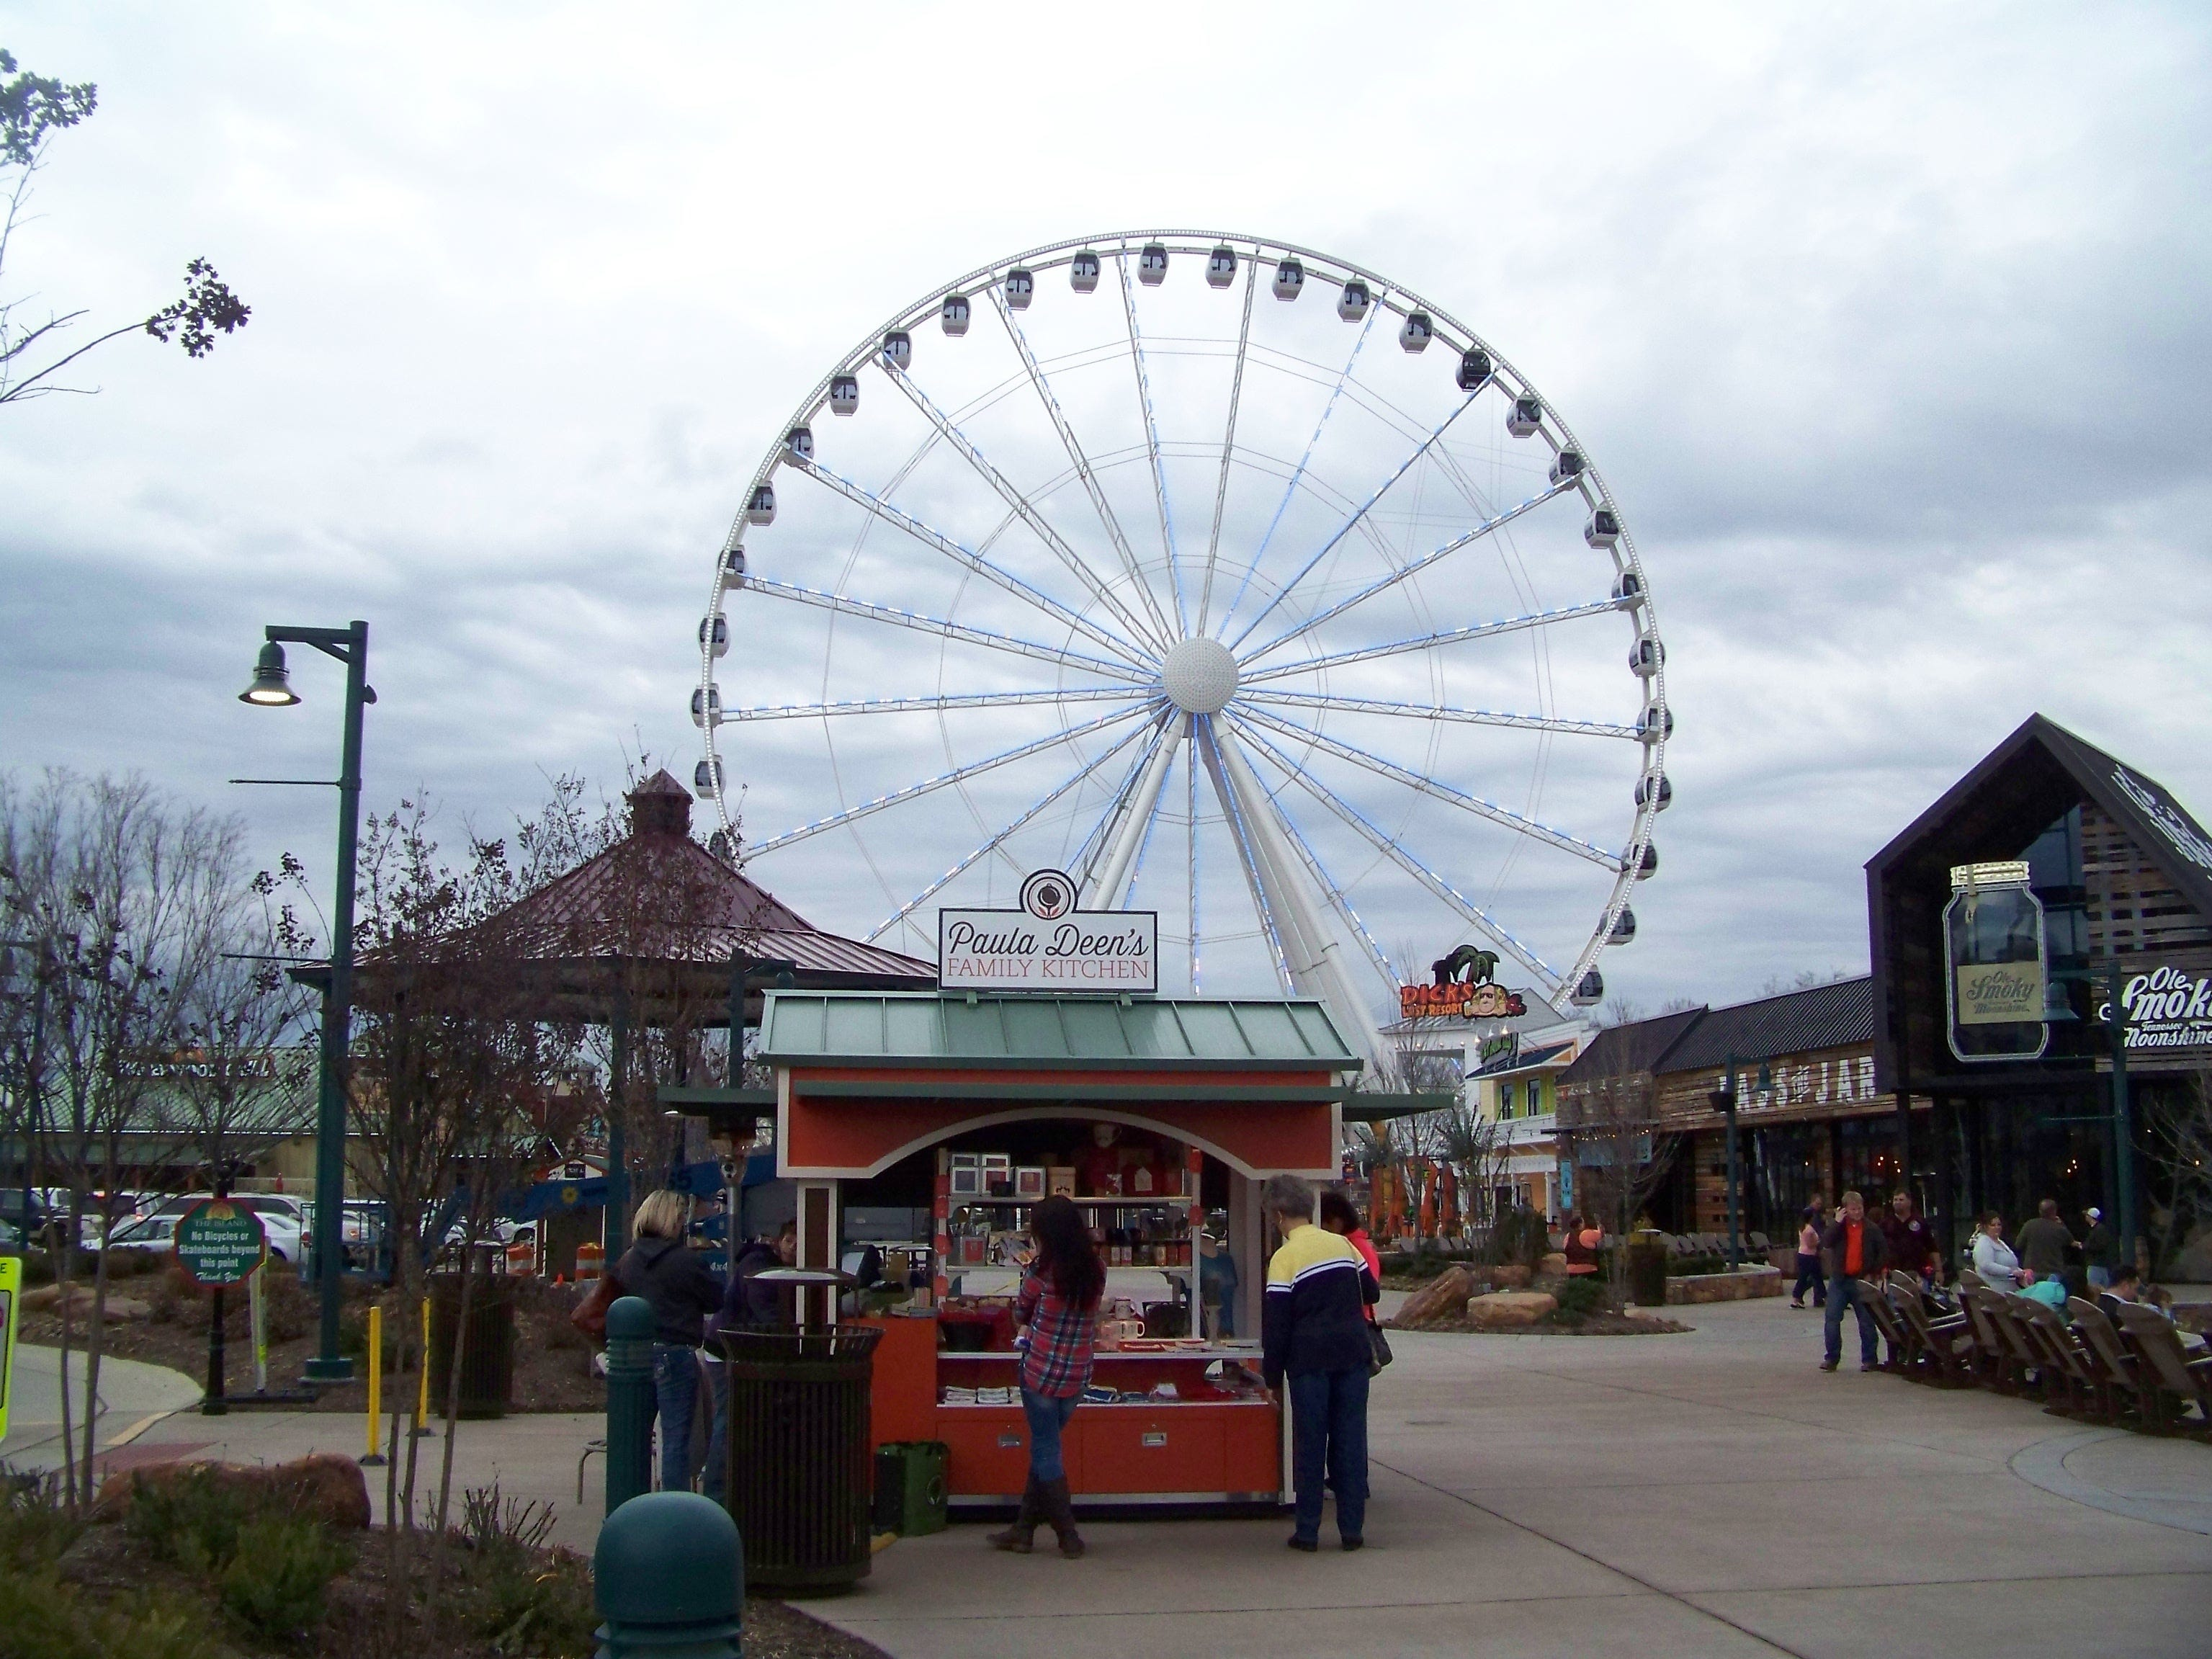 Paula Deen's Family Kitchen, under construction at The Island in Pigeon Forge, will allow diners to have a view of the 200-foot Ferris Wheel and the fountains. A booth selling Paula Deen merchandise sits across from the new restaurant.